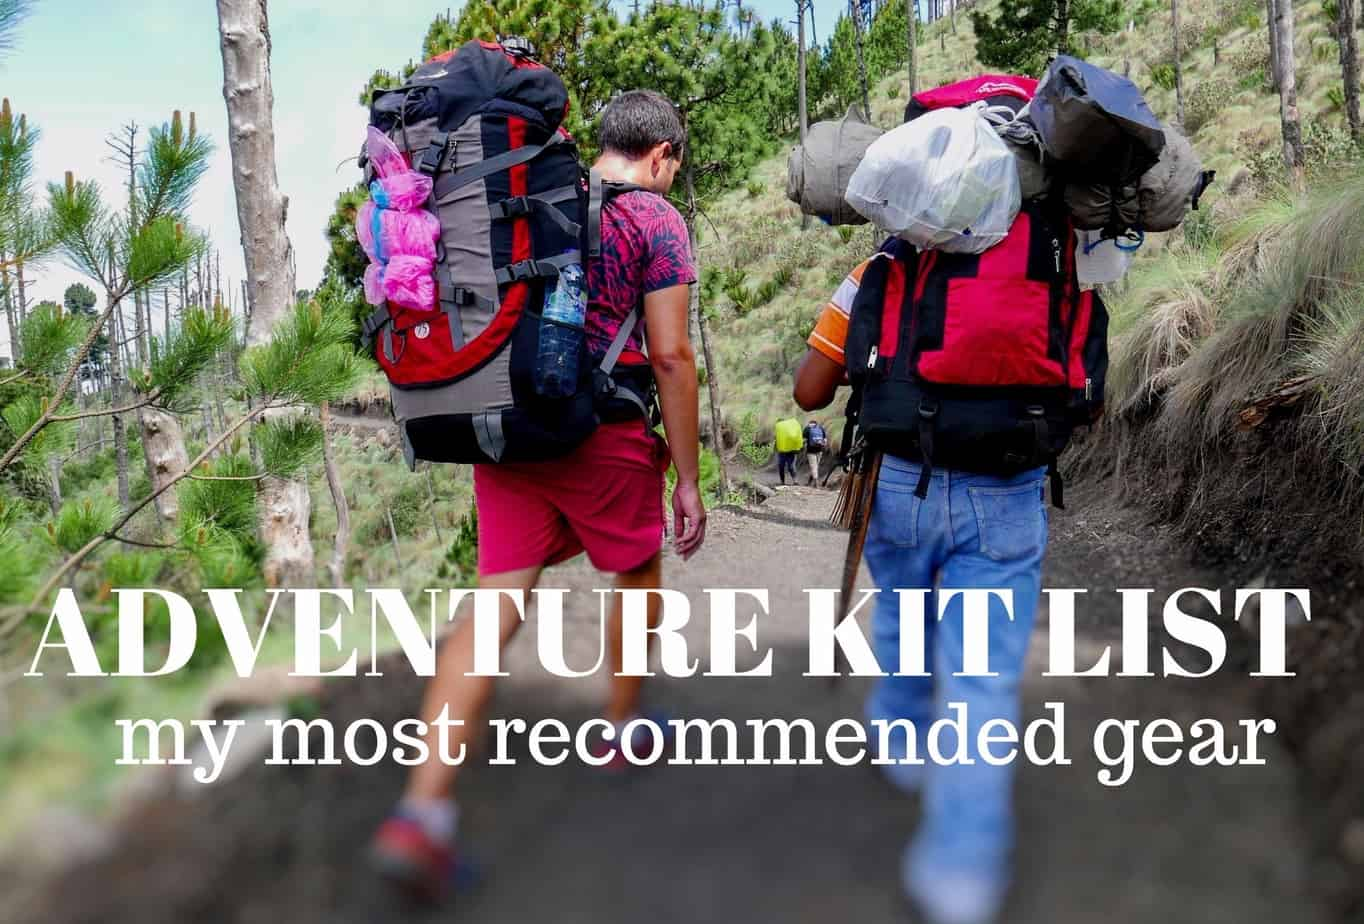 Adventure kit list